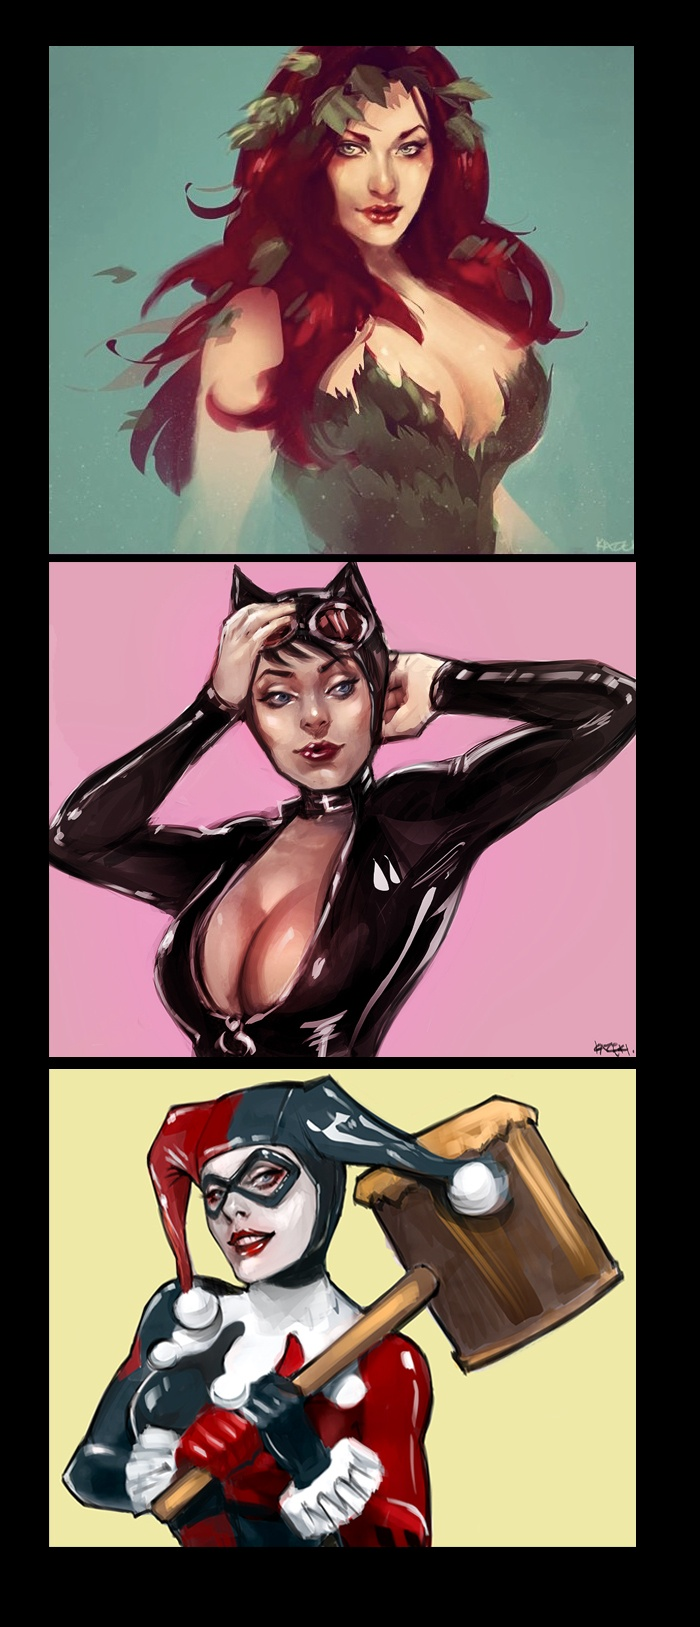 SIRENS by ~Kazeki  one of the reasons I loved Harley Quinn: She didn't have to show cleavage or any skin at all to be as drop dead gorgeous and knock out sexy as the other Sirens.